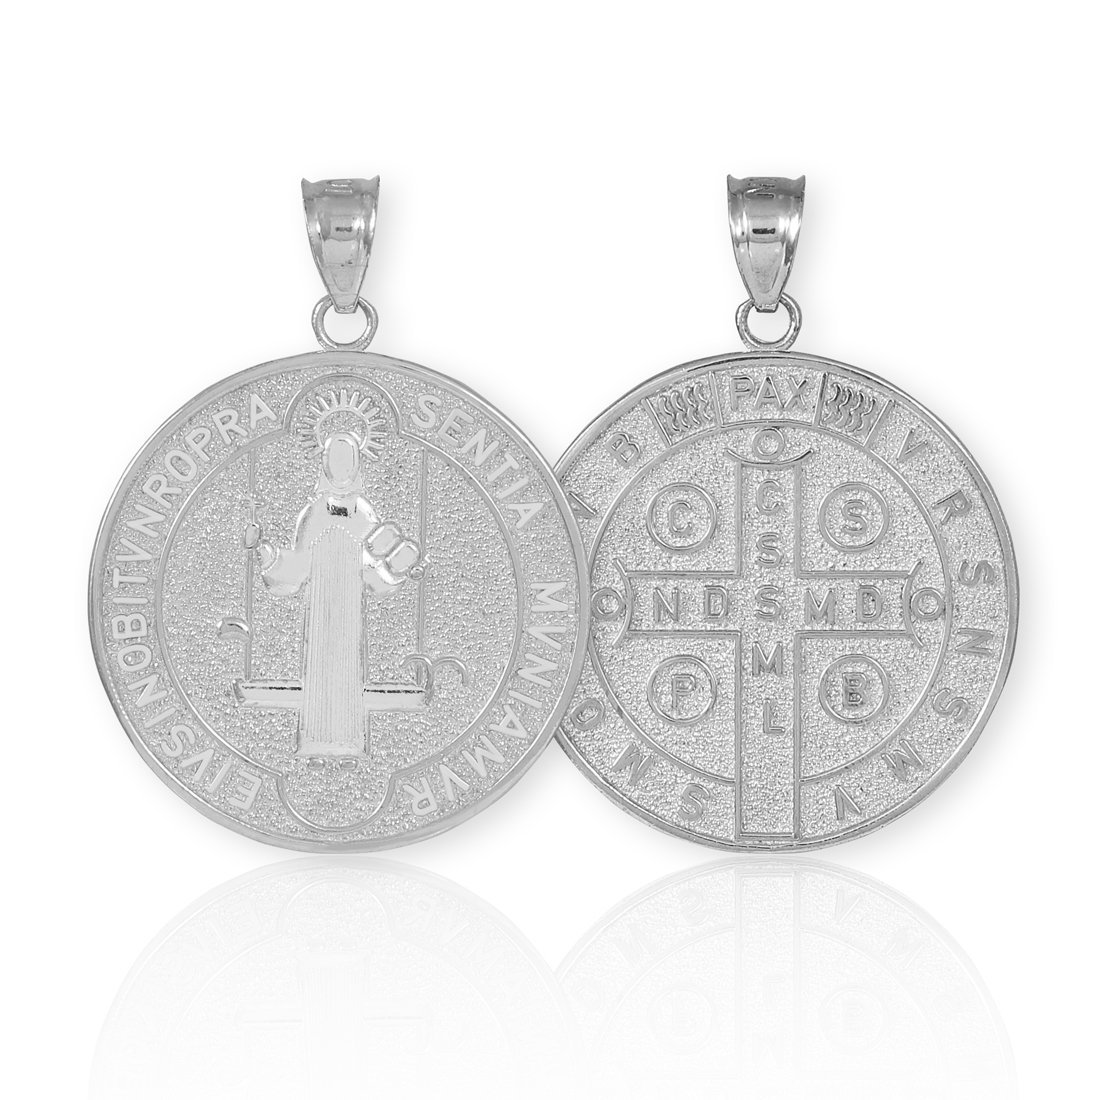 925 Sterling Silver Saint Benedict Medal Protection Pendant Necklace 0.93 Inch in Diameter